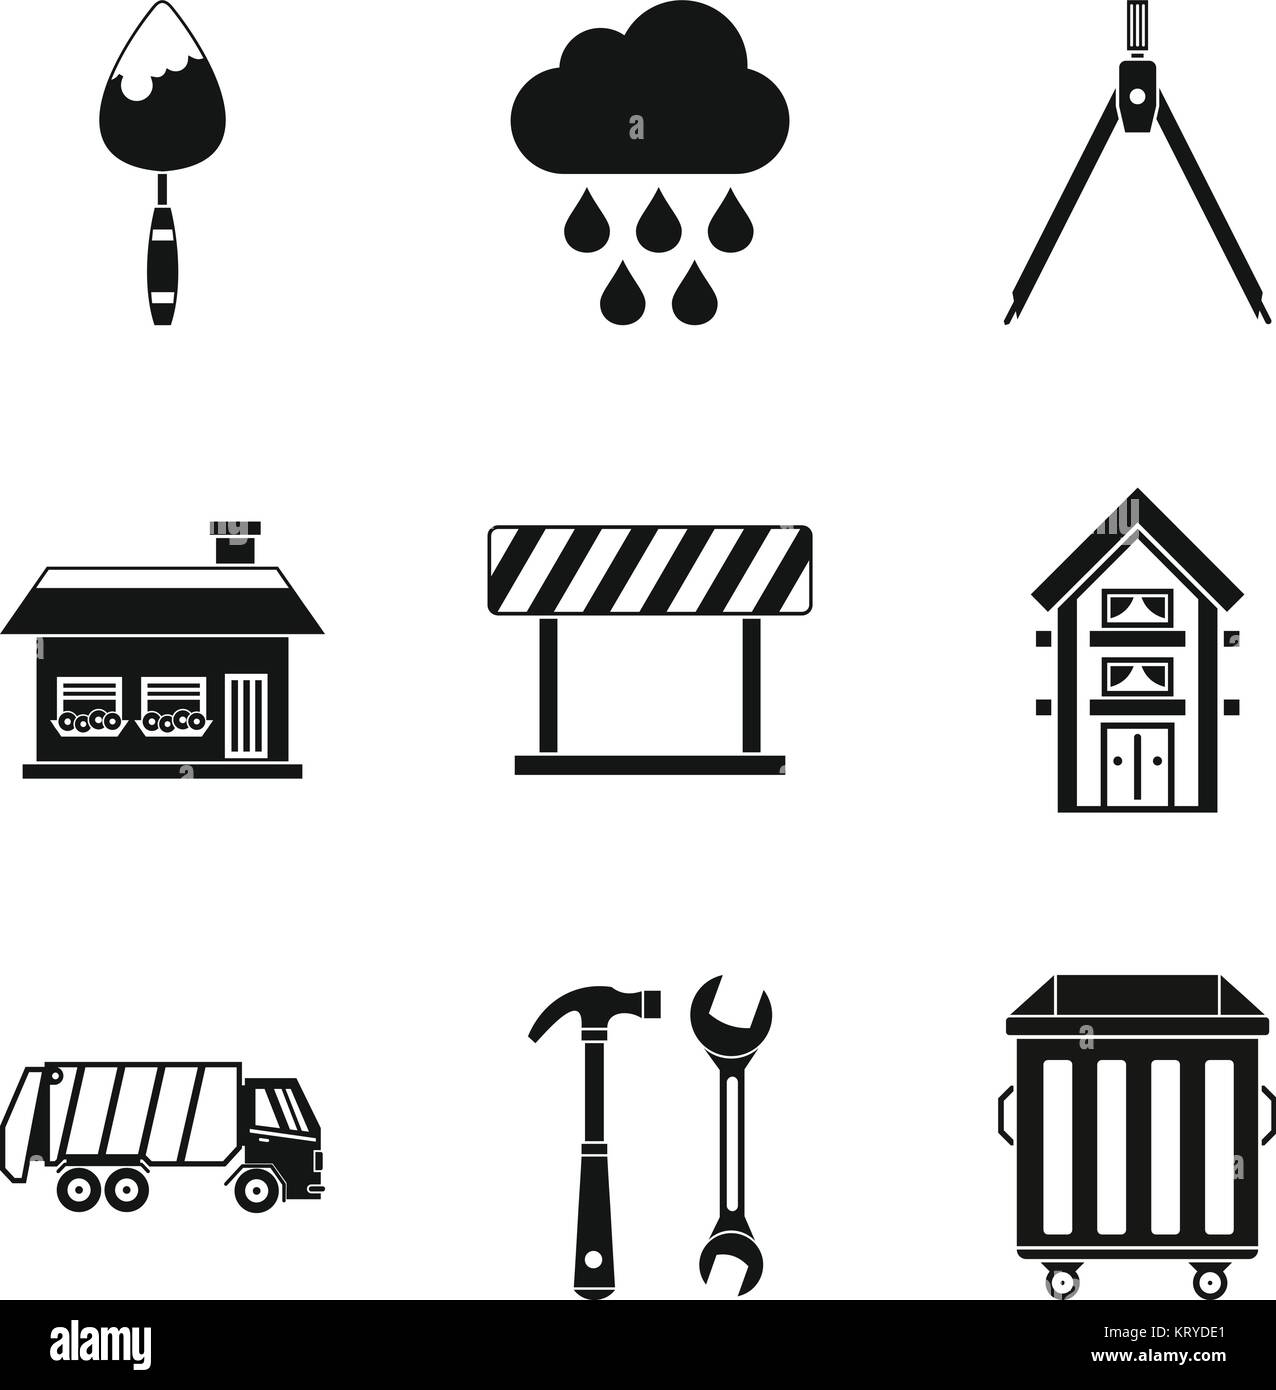 Construction project icons set, simple style Stock Vector